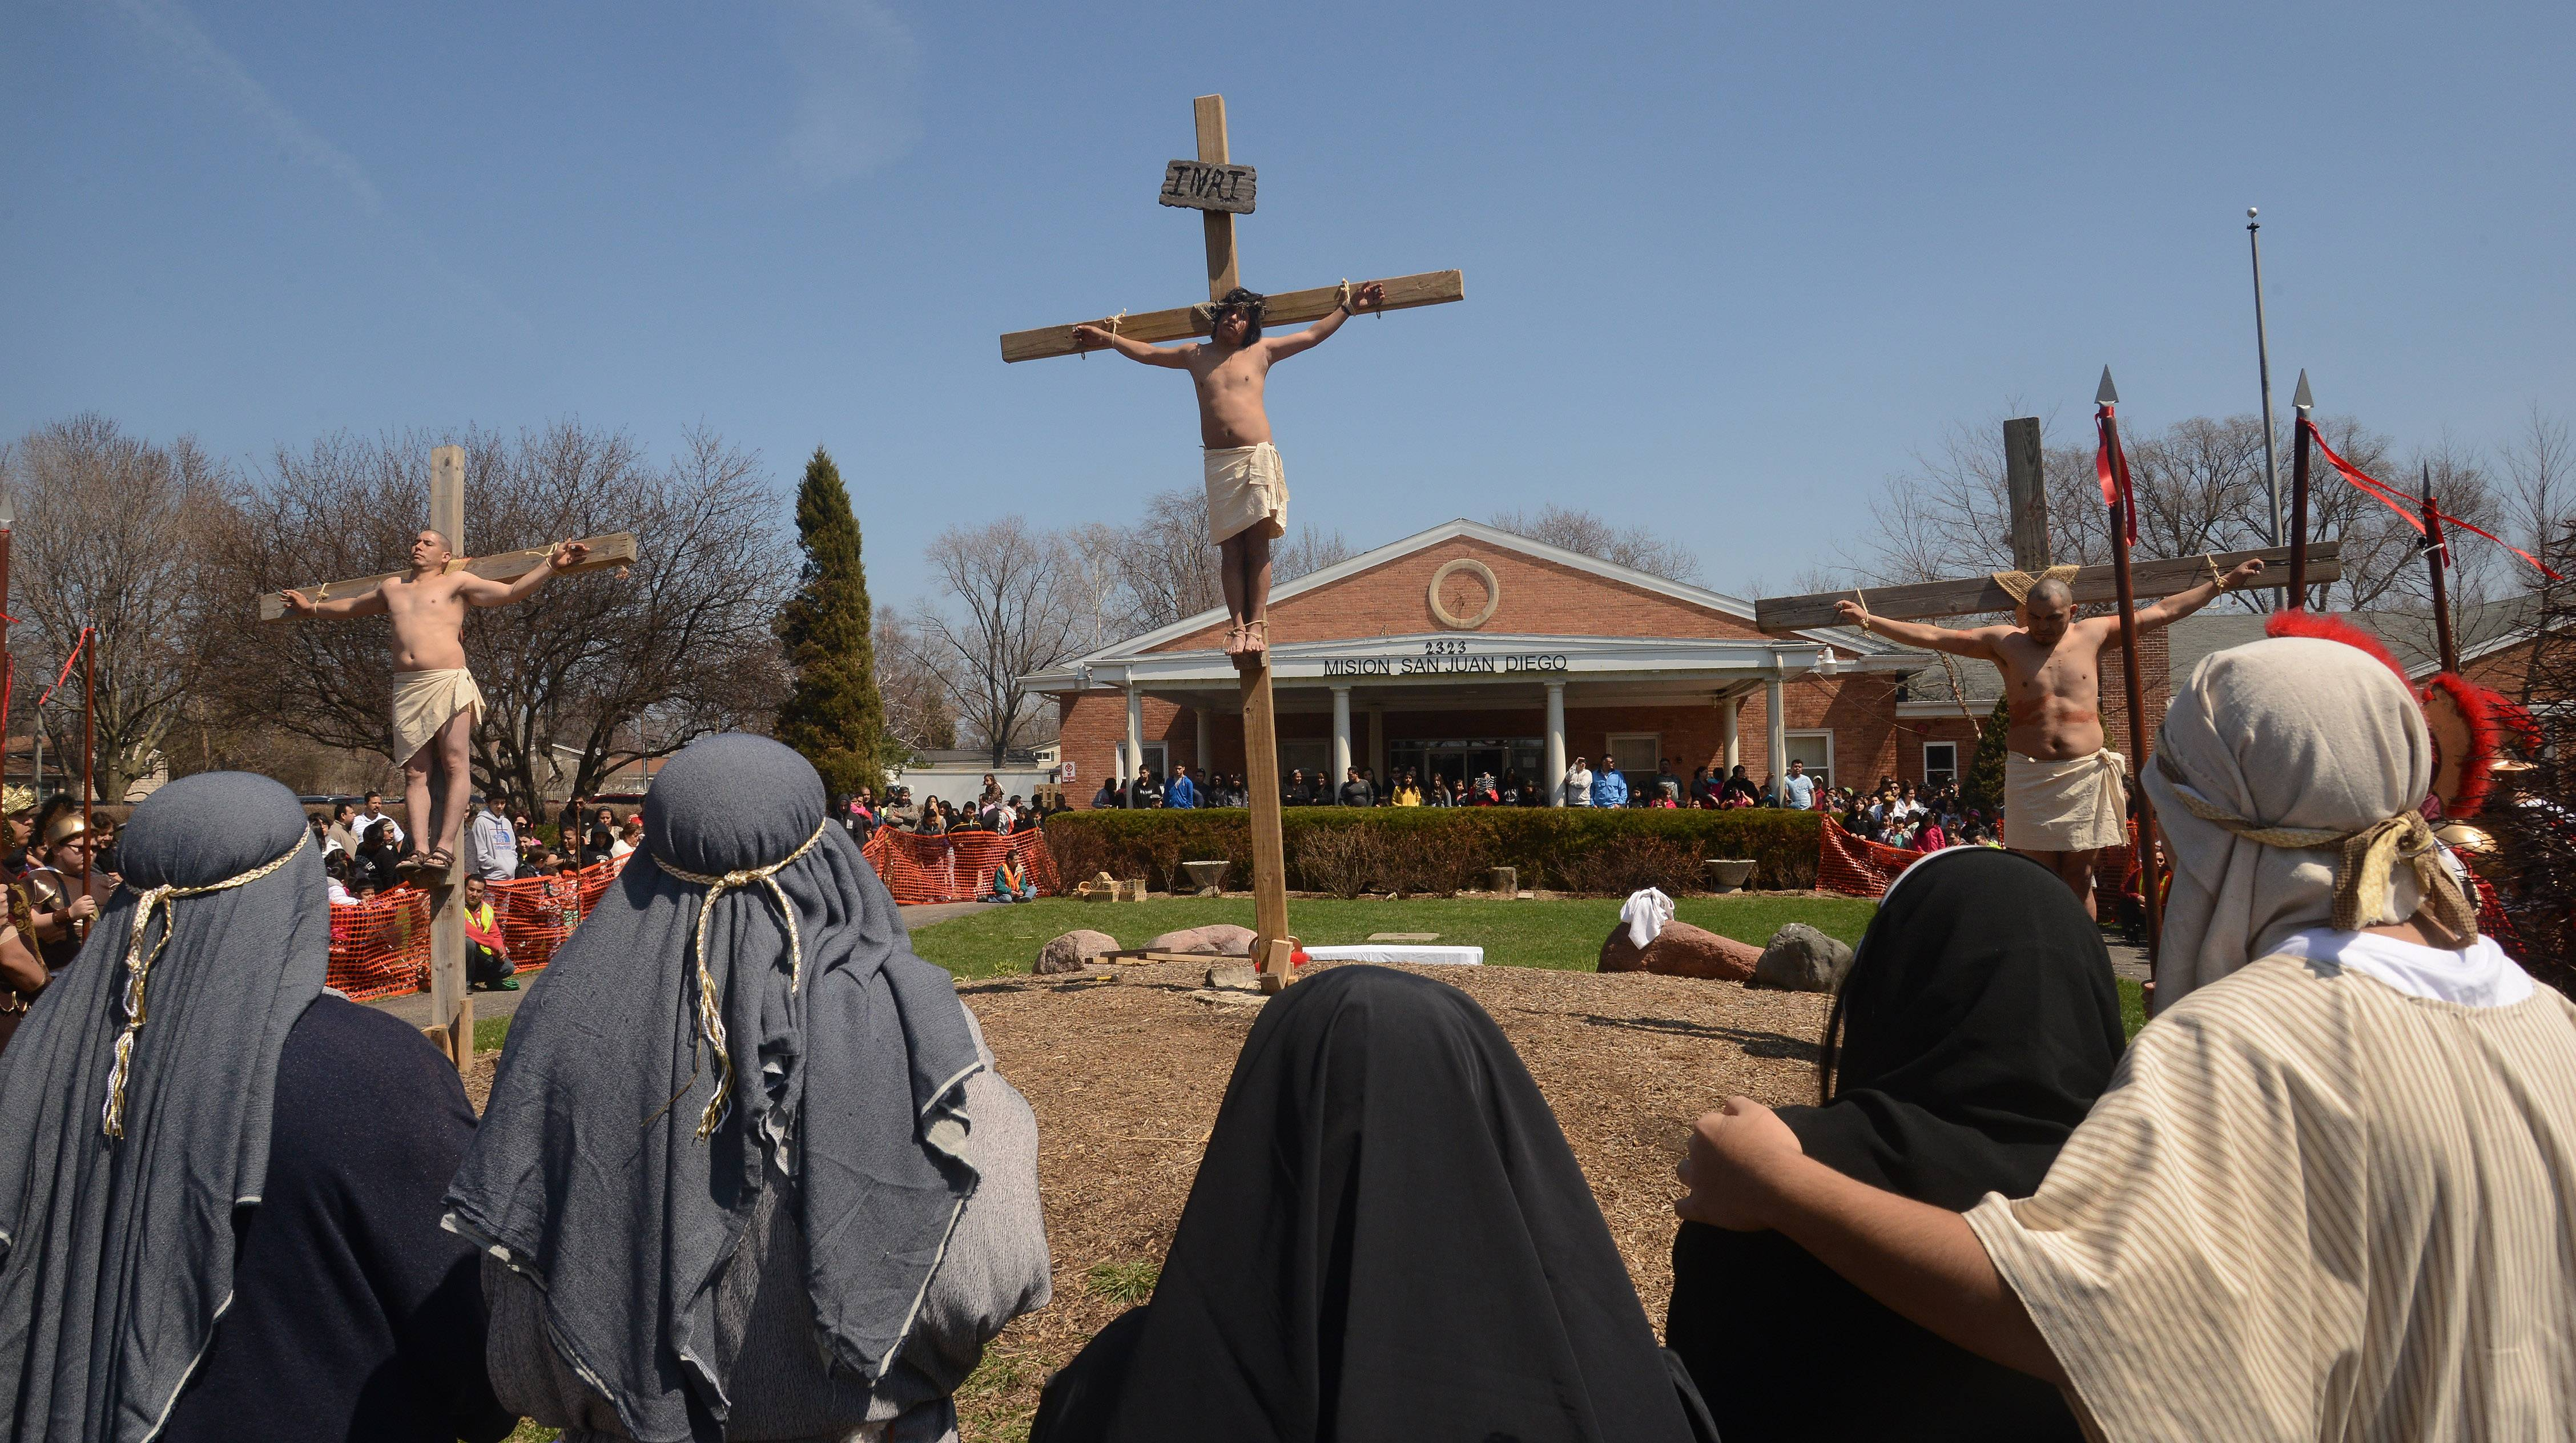 The 12th Station of the Cross, signifying Jesus' death, is performed during a Good Friday re-enactment at Mision San Juan Diego in Arlington Heights.